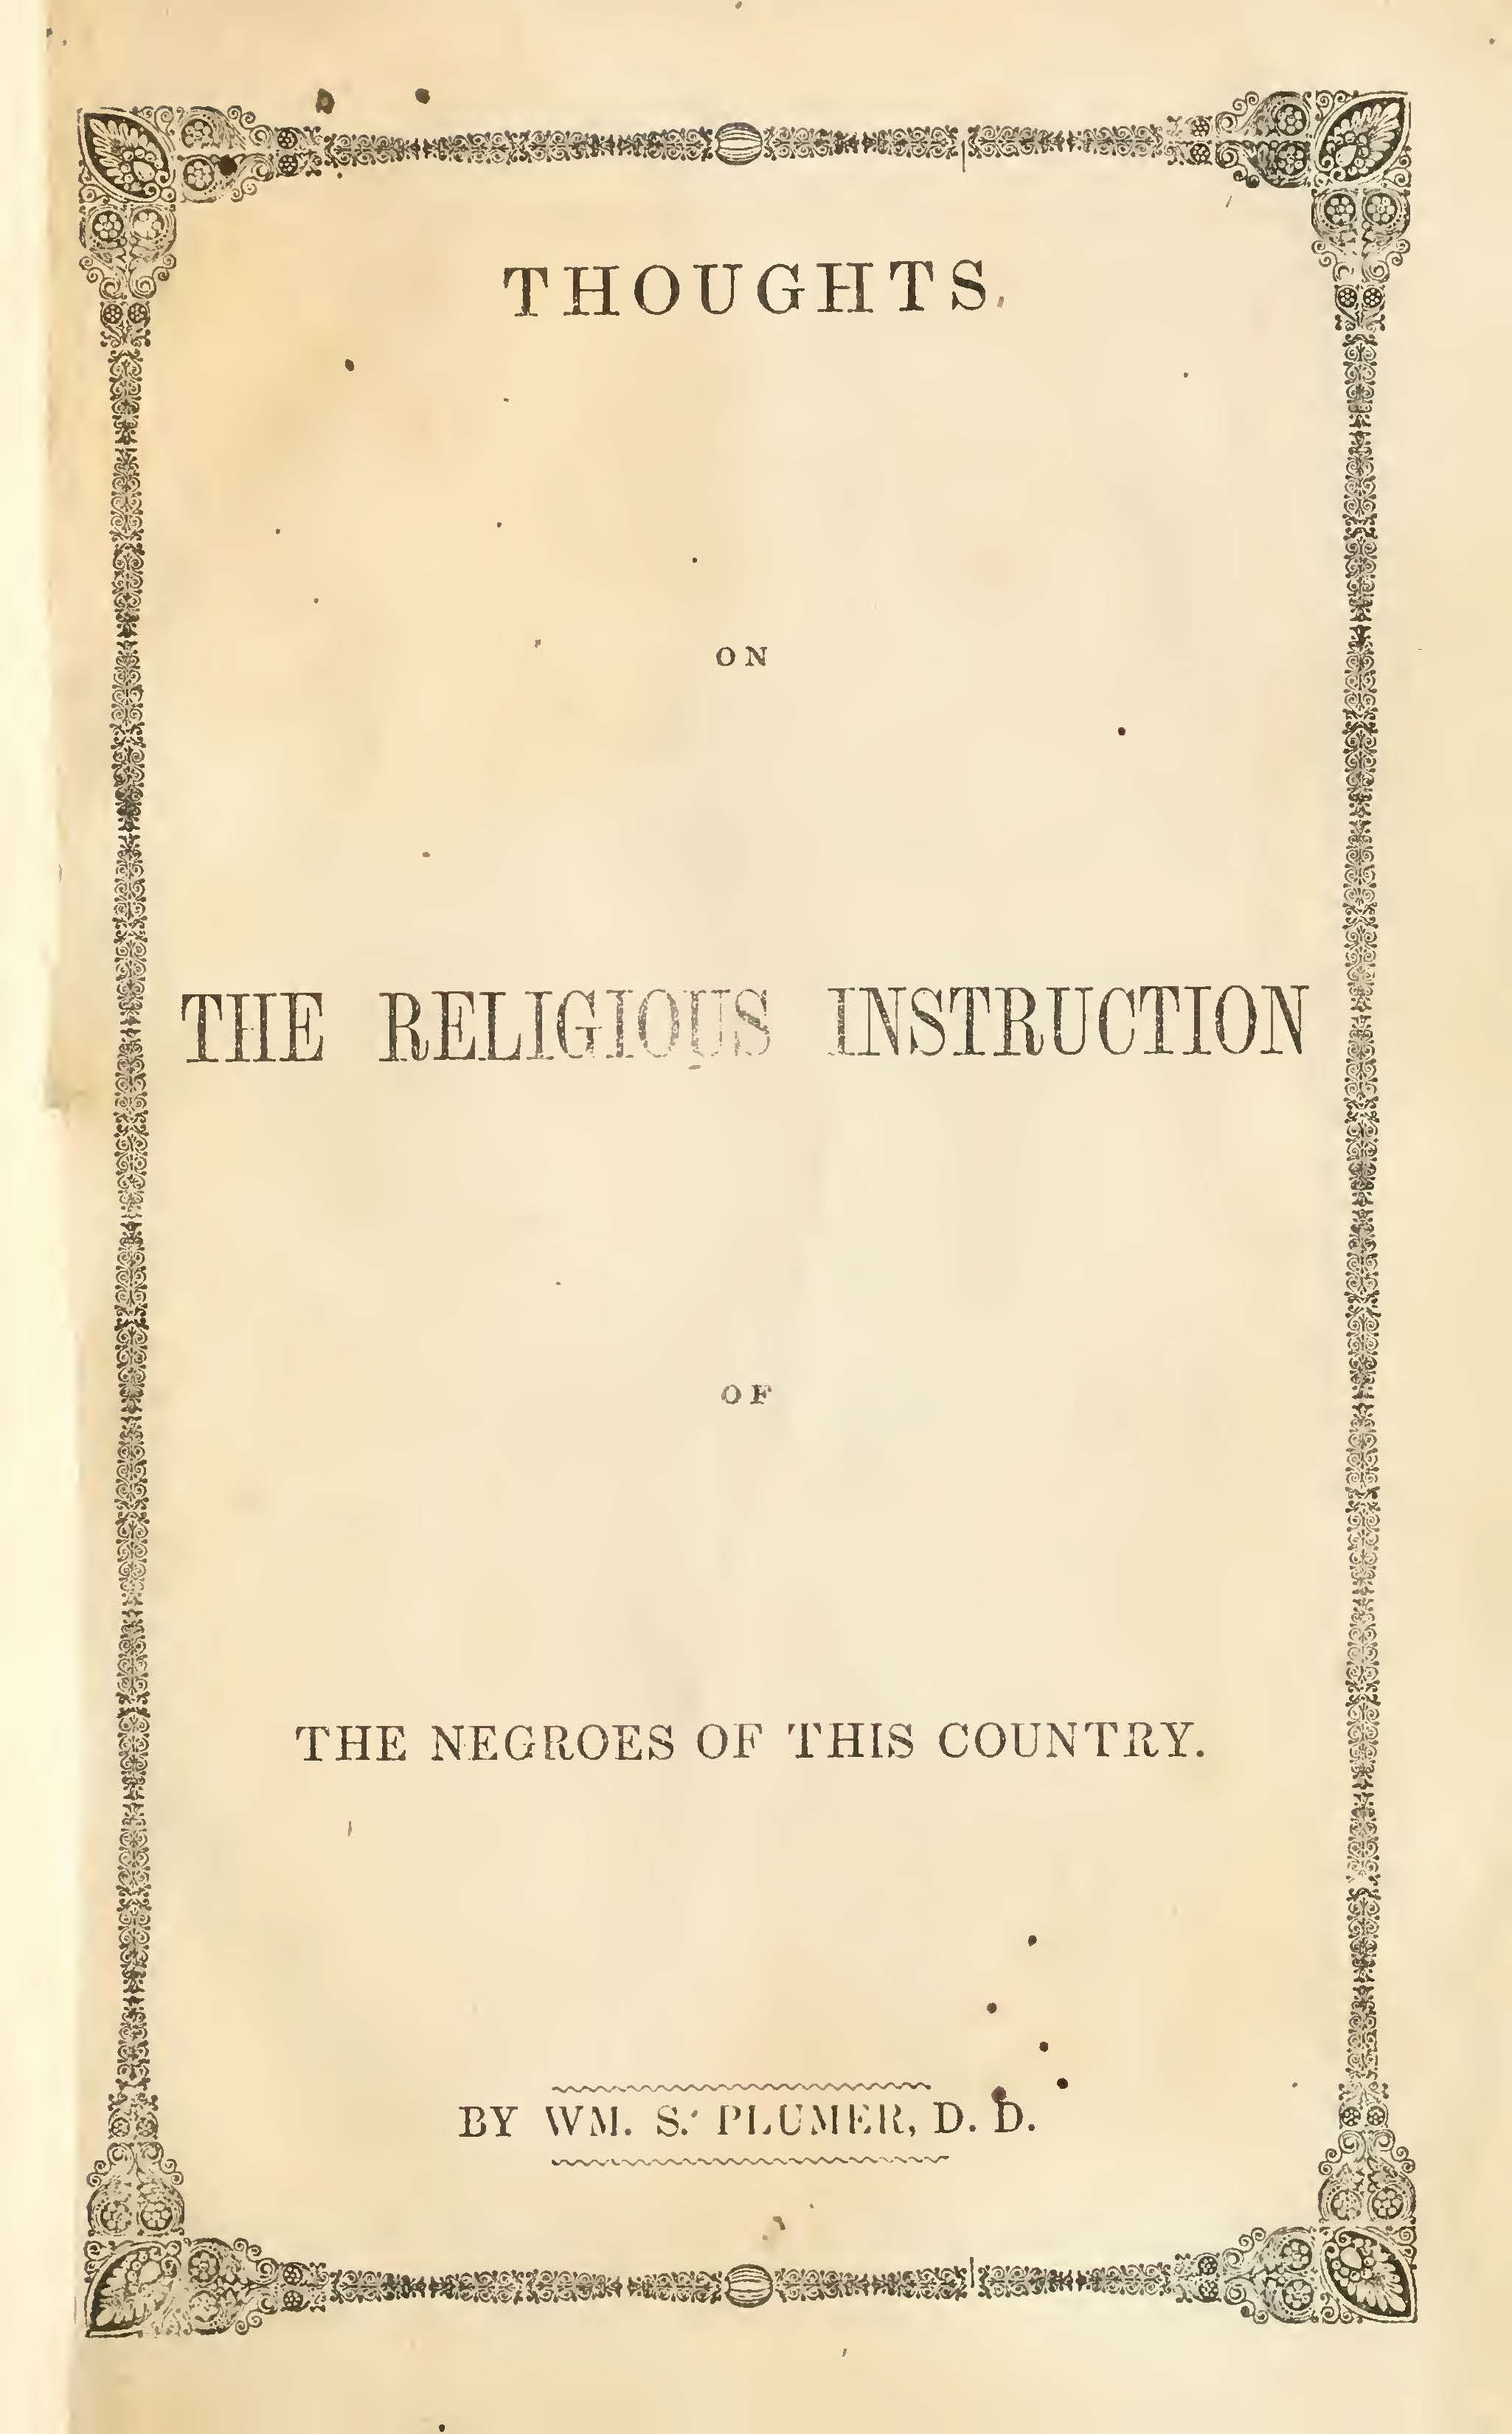 Plumer, Thoughts on the Religious Education of the Negroes.jpg